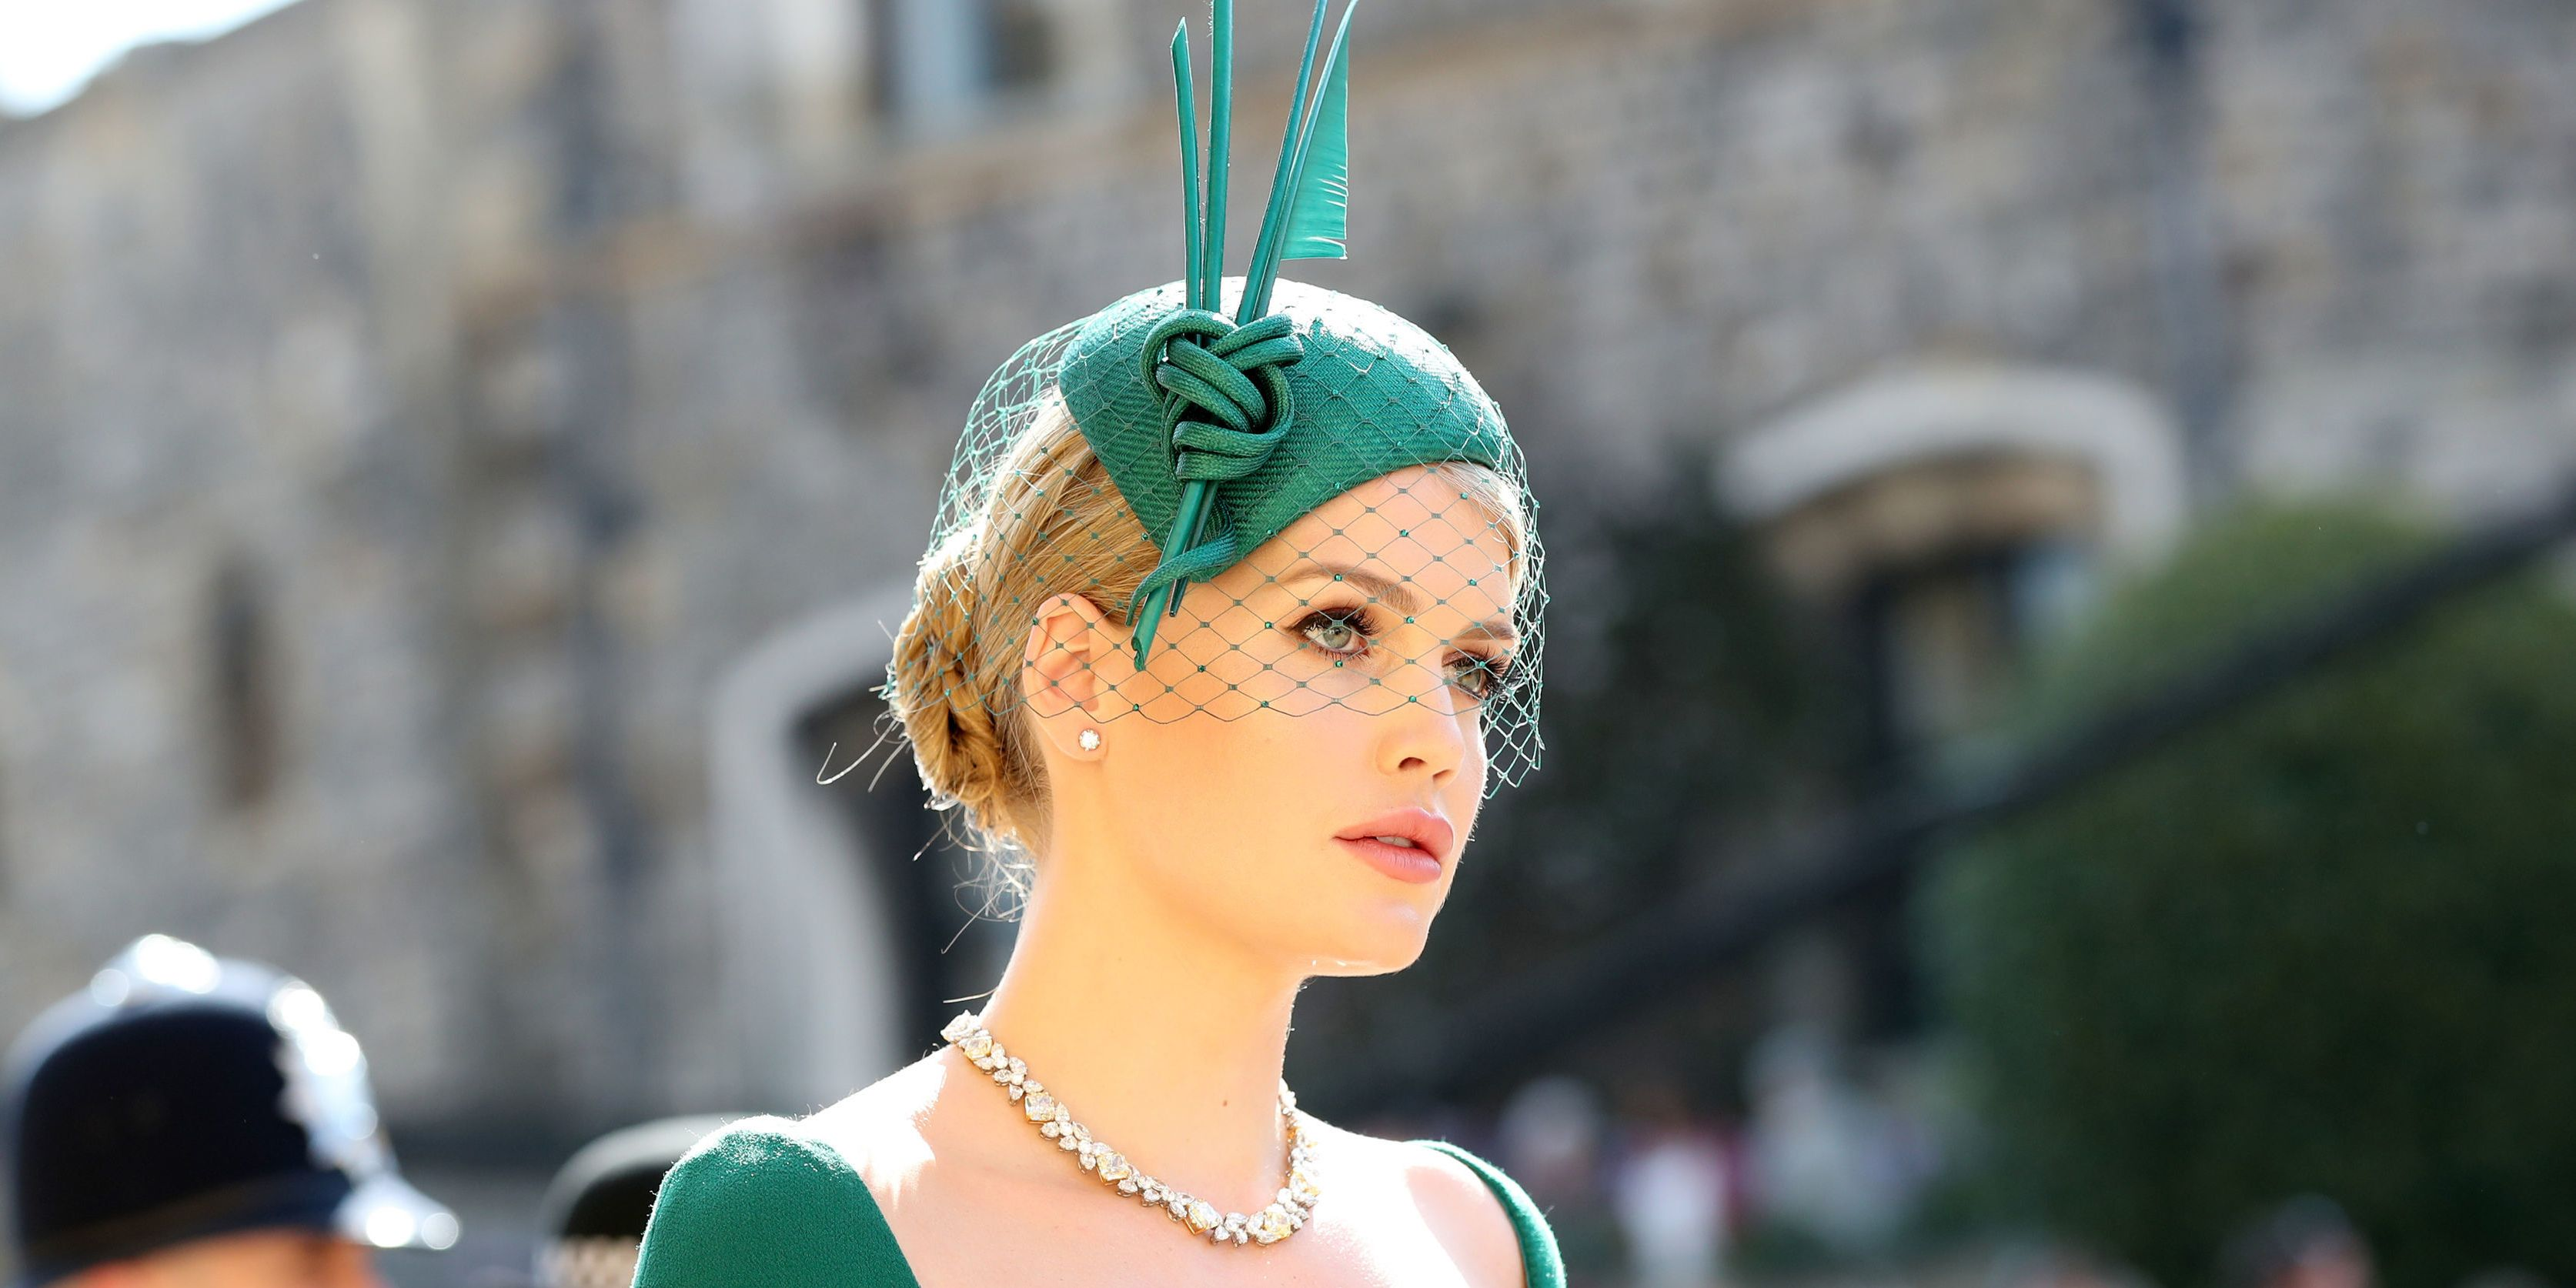 Royal Wedding  Every Fantastical Gravity-Defying Hat And Fascinator Worn By  The Guests 98747dfc0ea